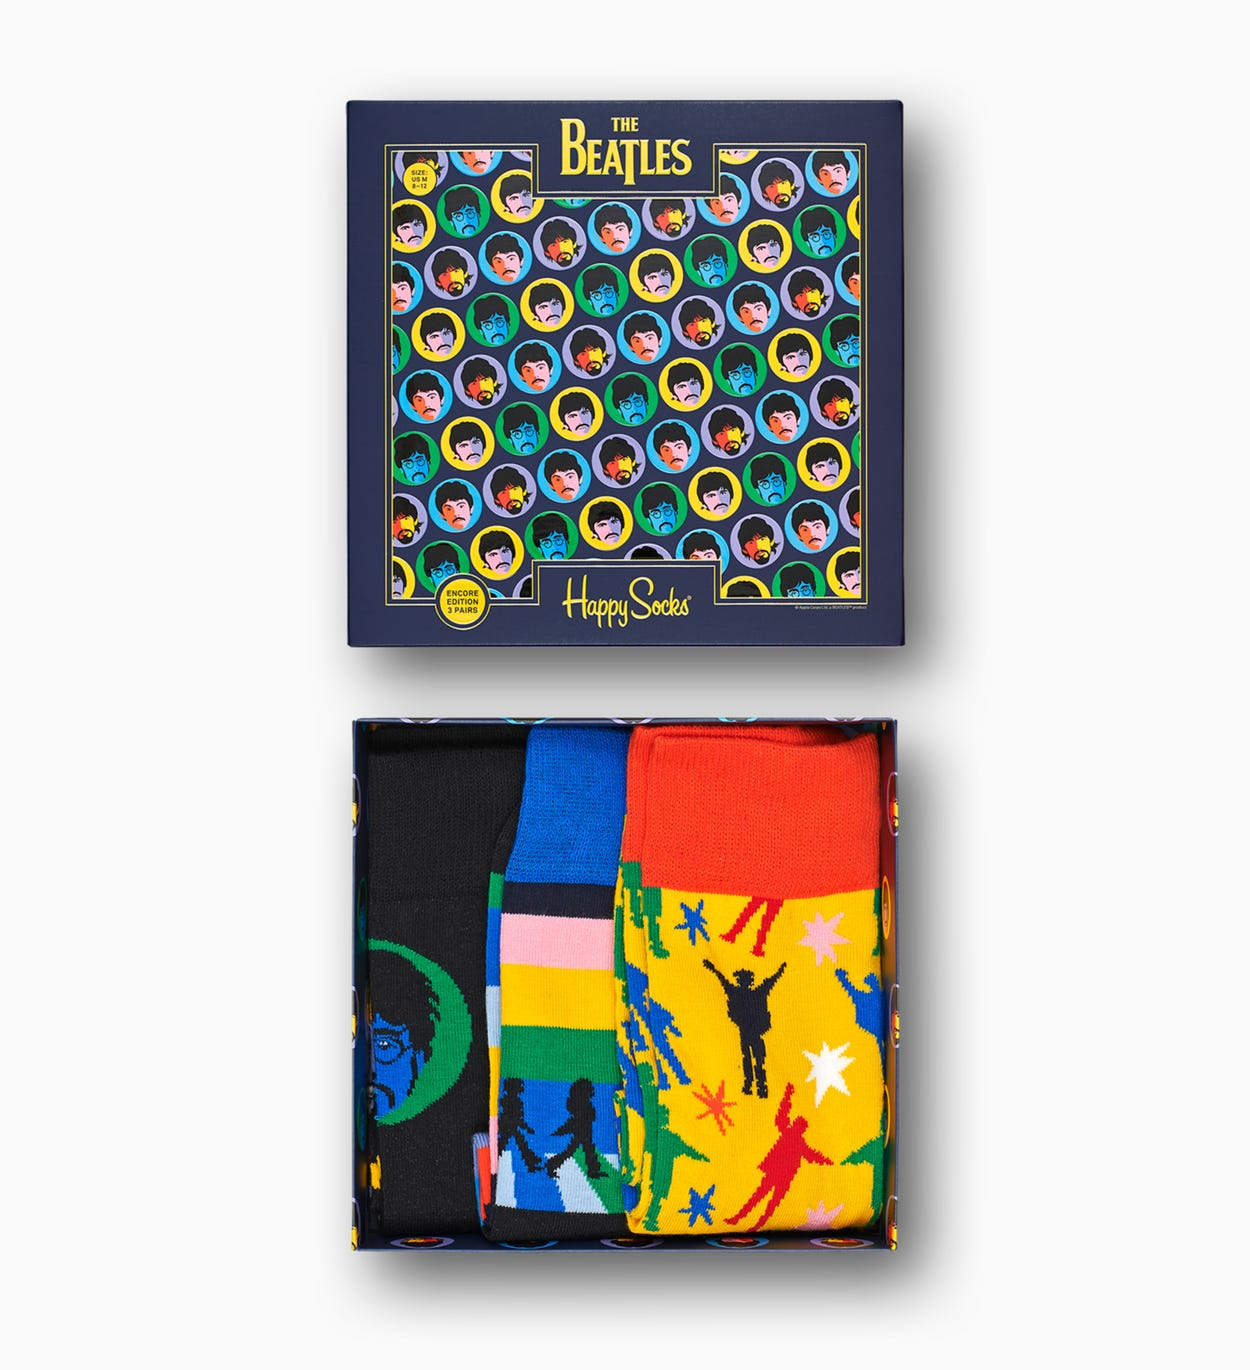 Make the Beatles fan in your life feel like #1 with the chart-topping Beatles Gift Box. Featuring three unique styles in vibrant technicolor, this speci…